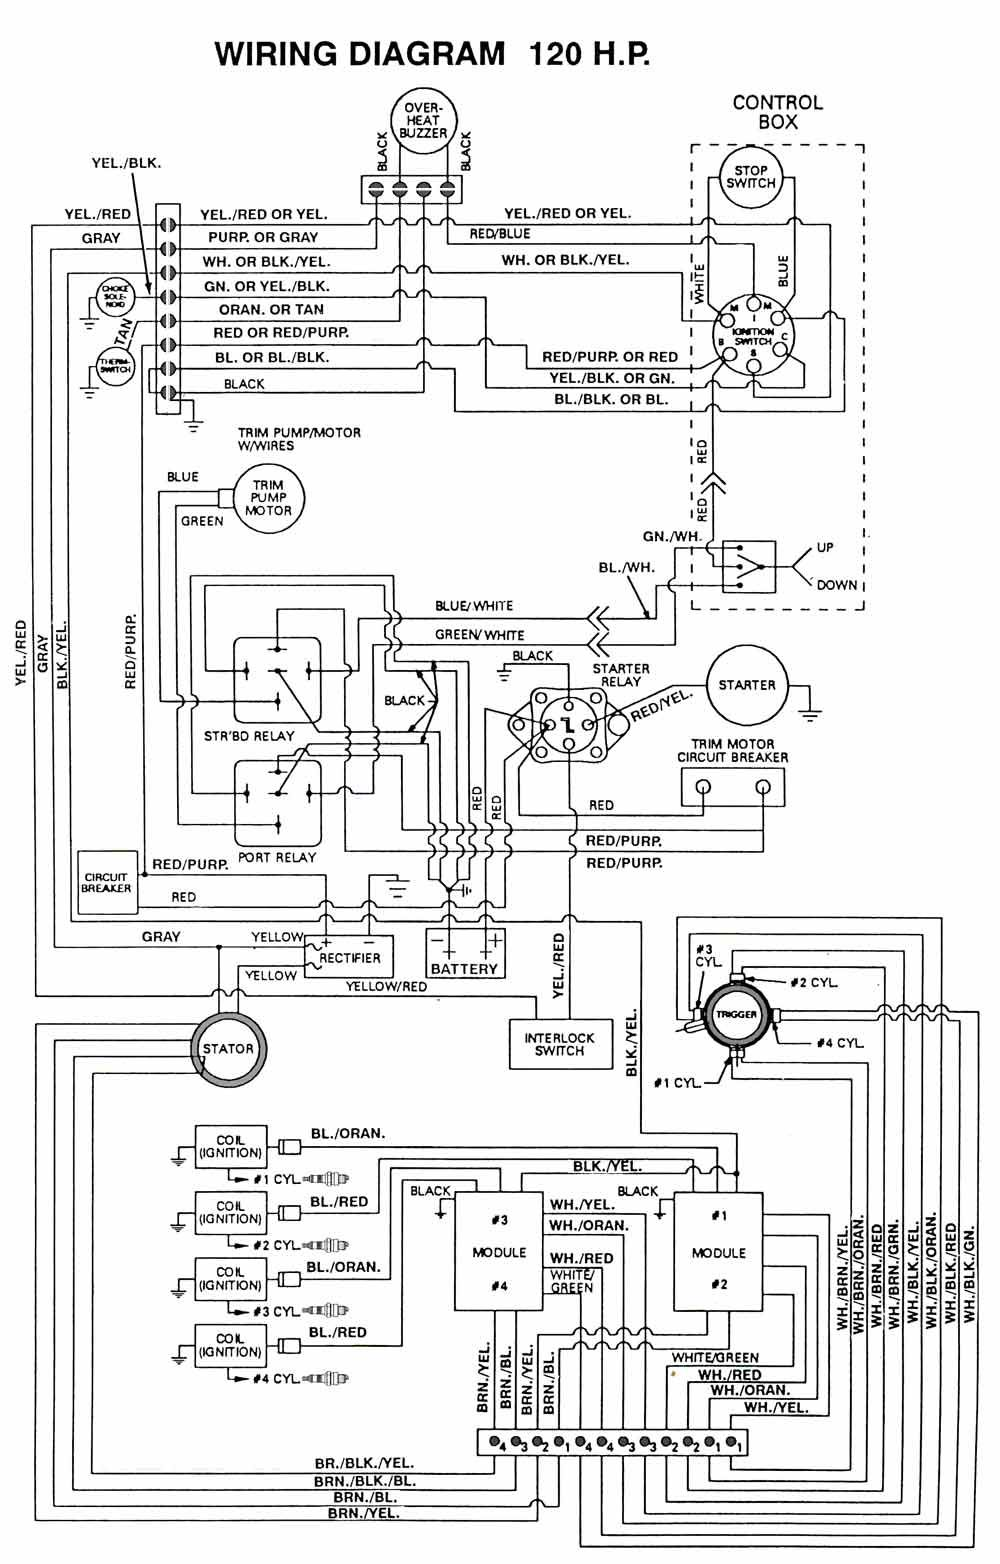 Force 120 Wiring Diagram Trusted Mercury Motor Outboard Og251541